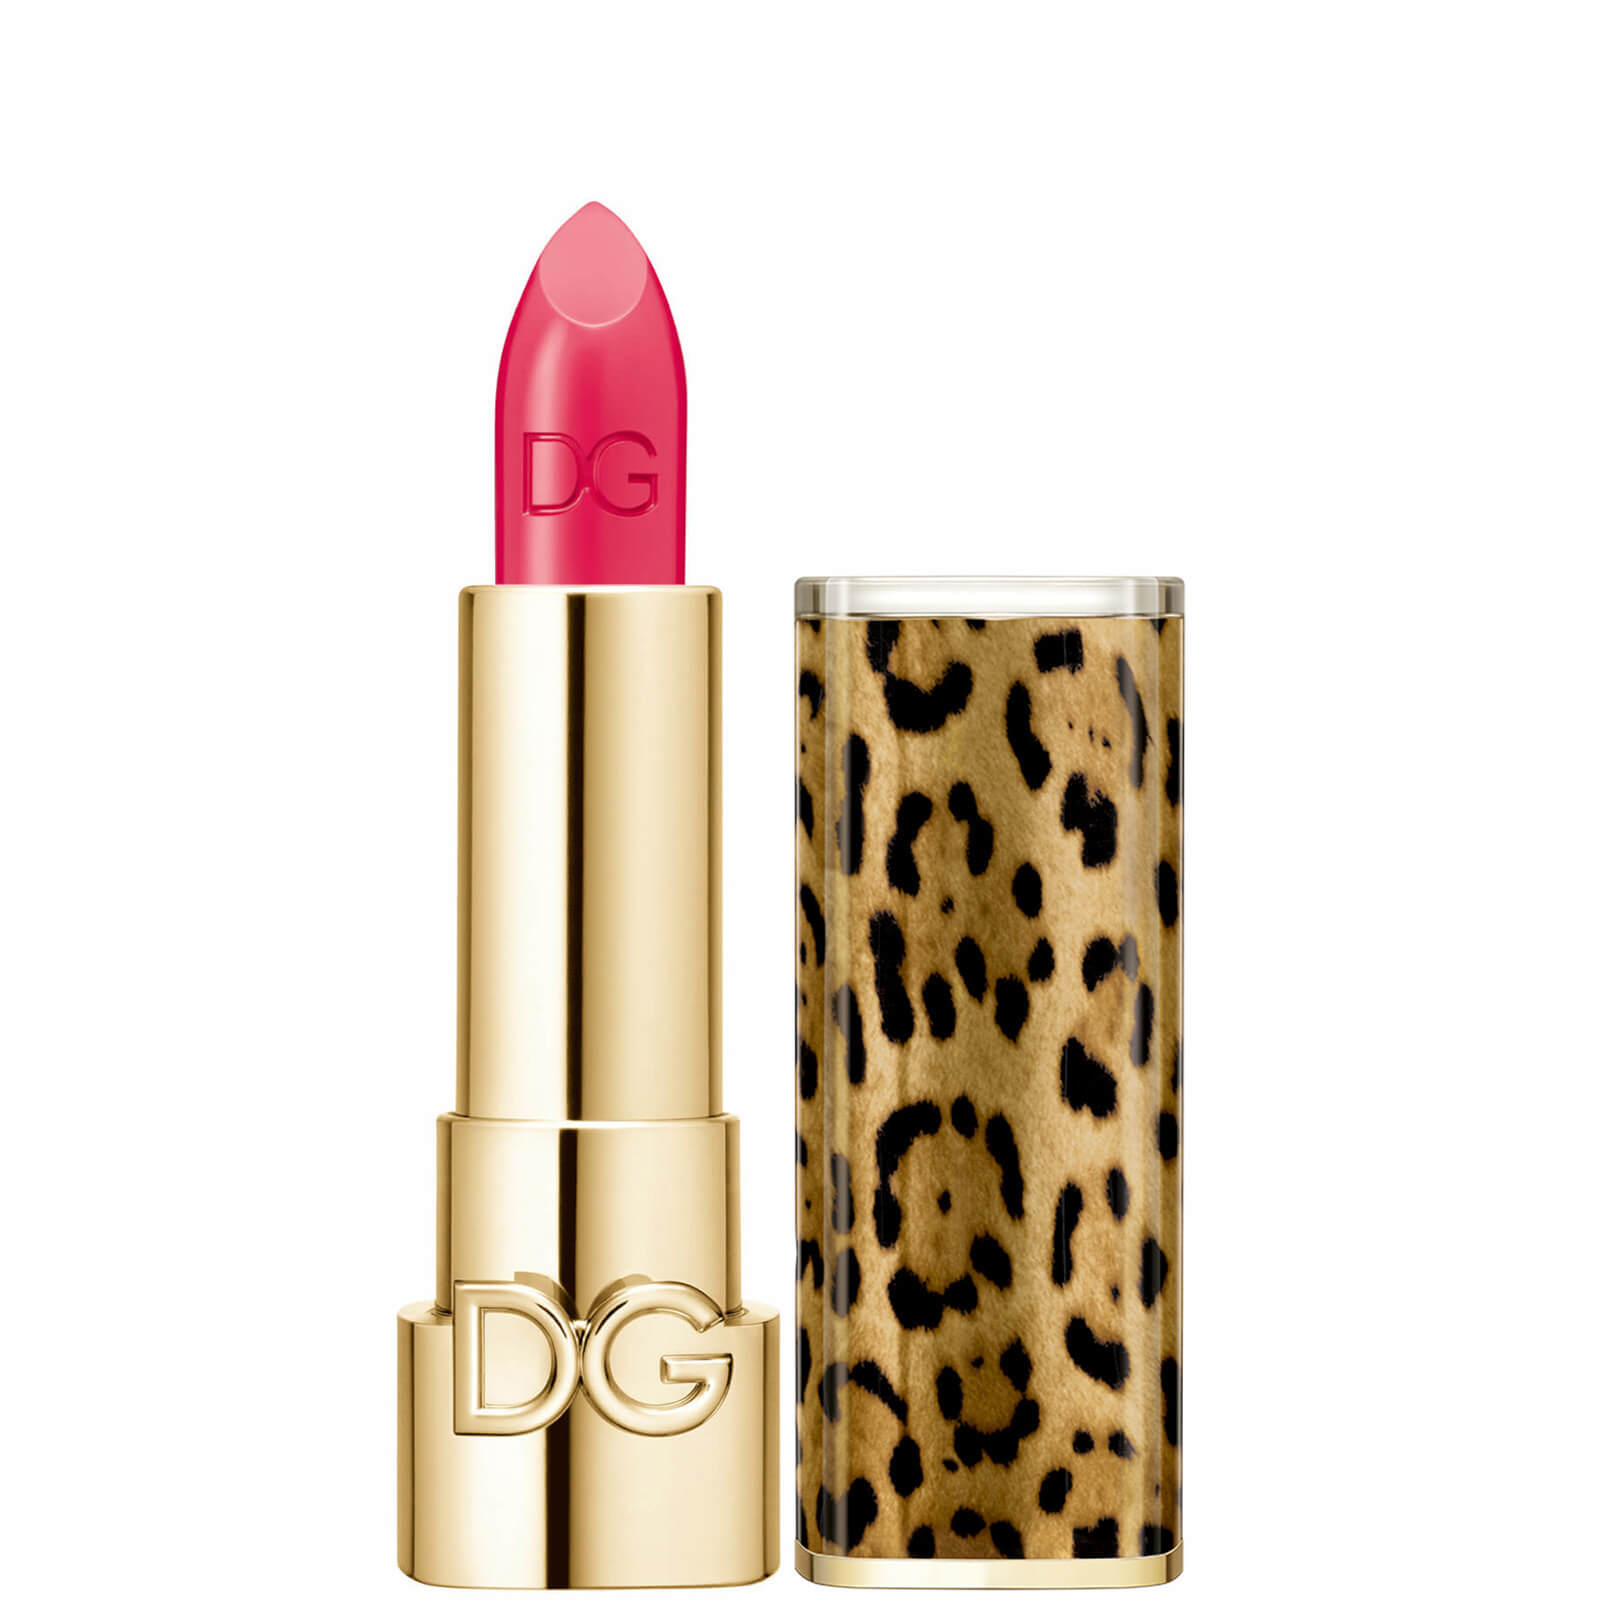 Dolce&Gabbana The Only One Lipstick + Cap (Animalier) (Various Shades) - 270 Millennial Pink